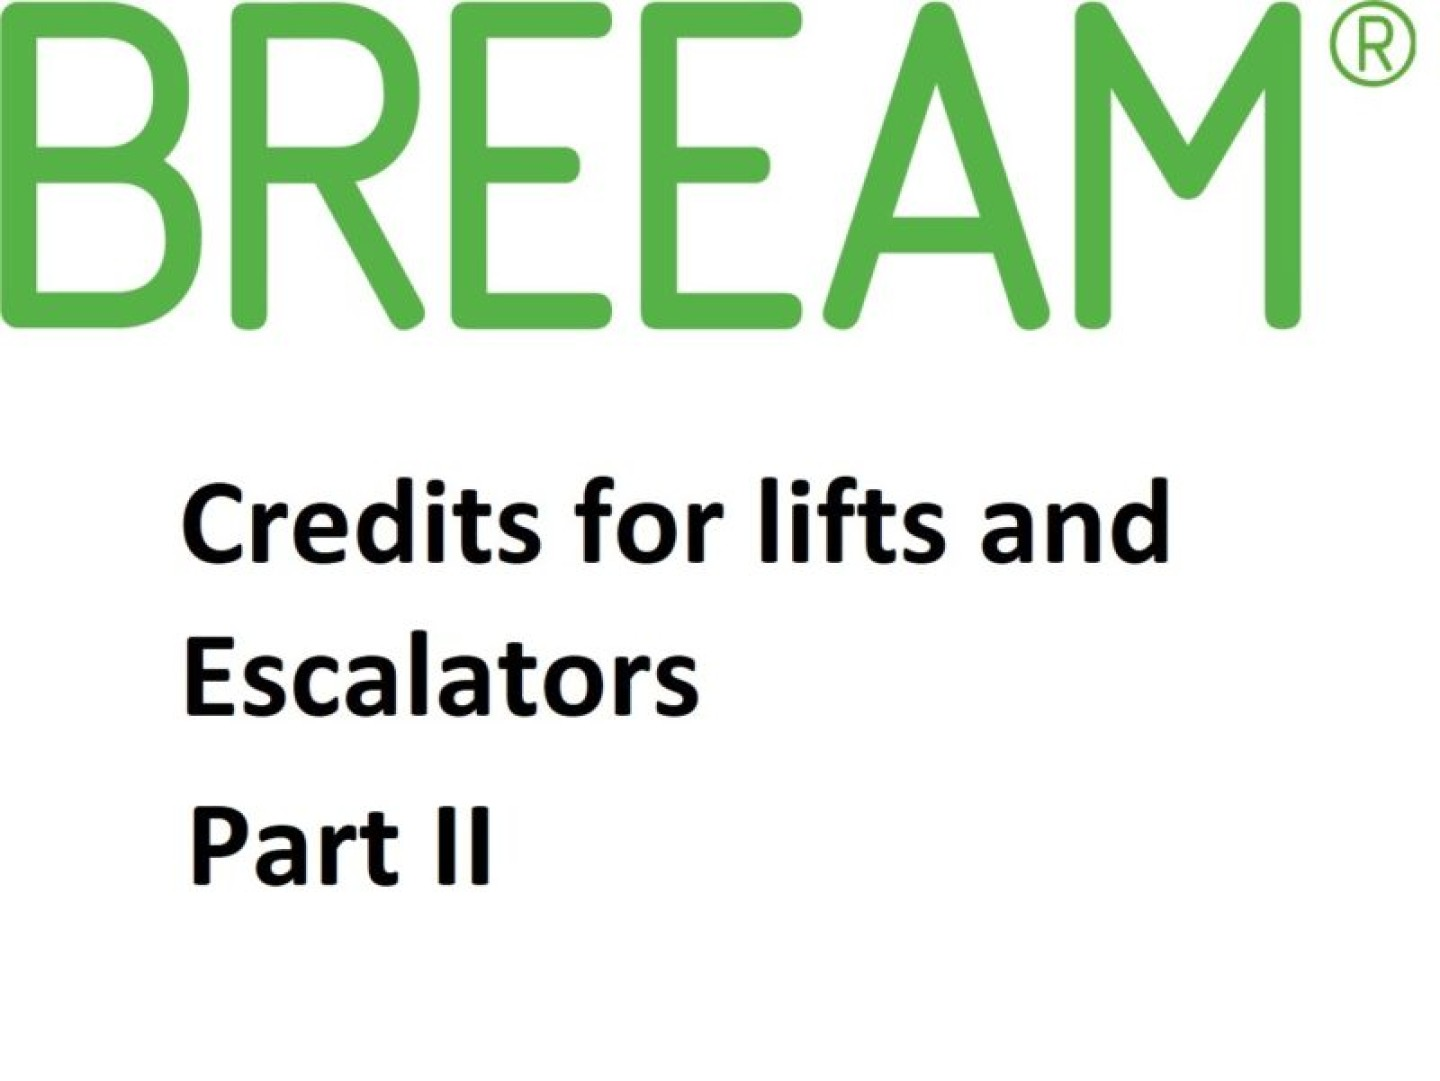 BREEAM Credits for Lifts Part II